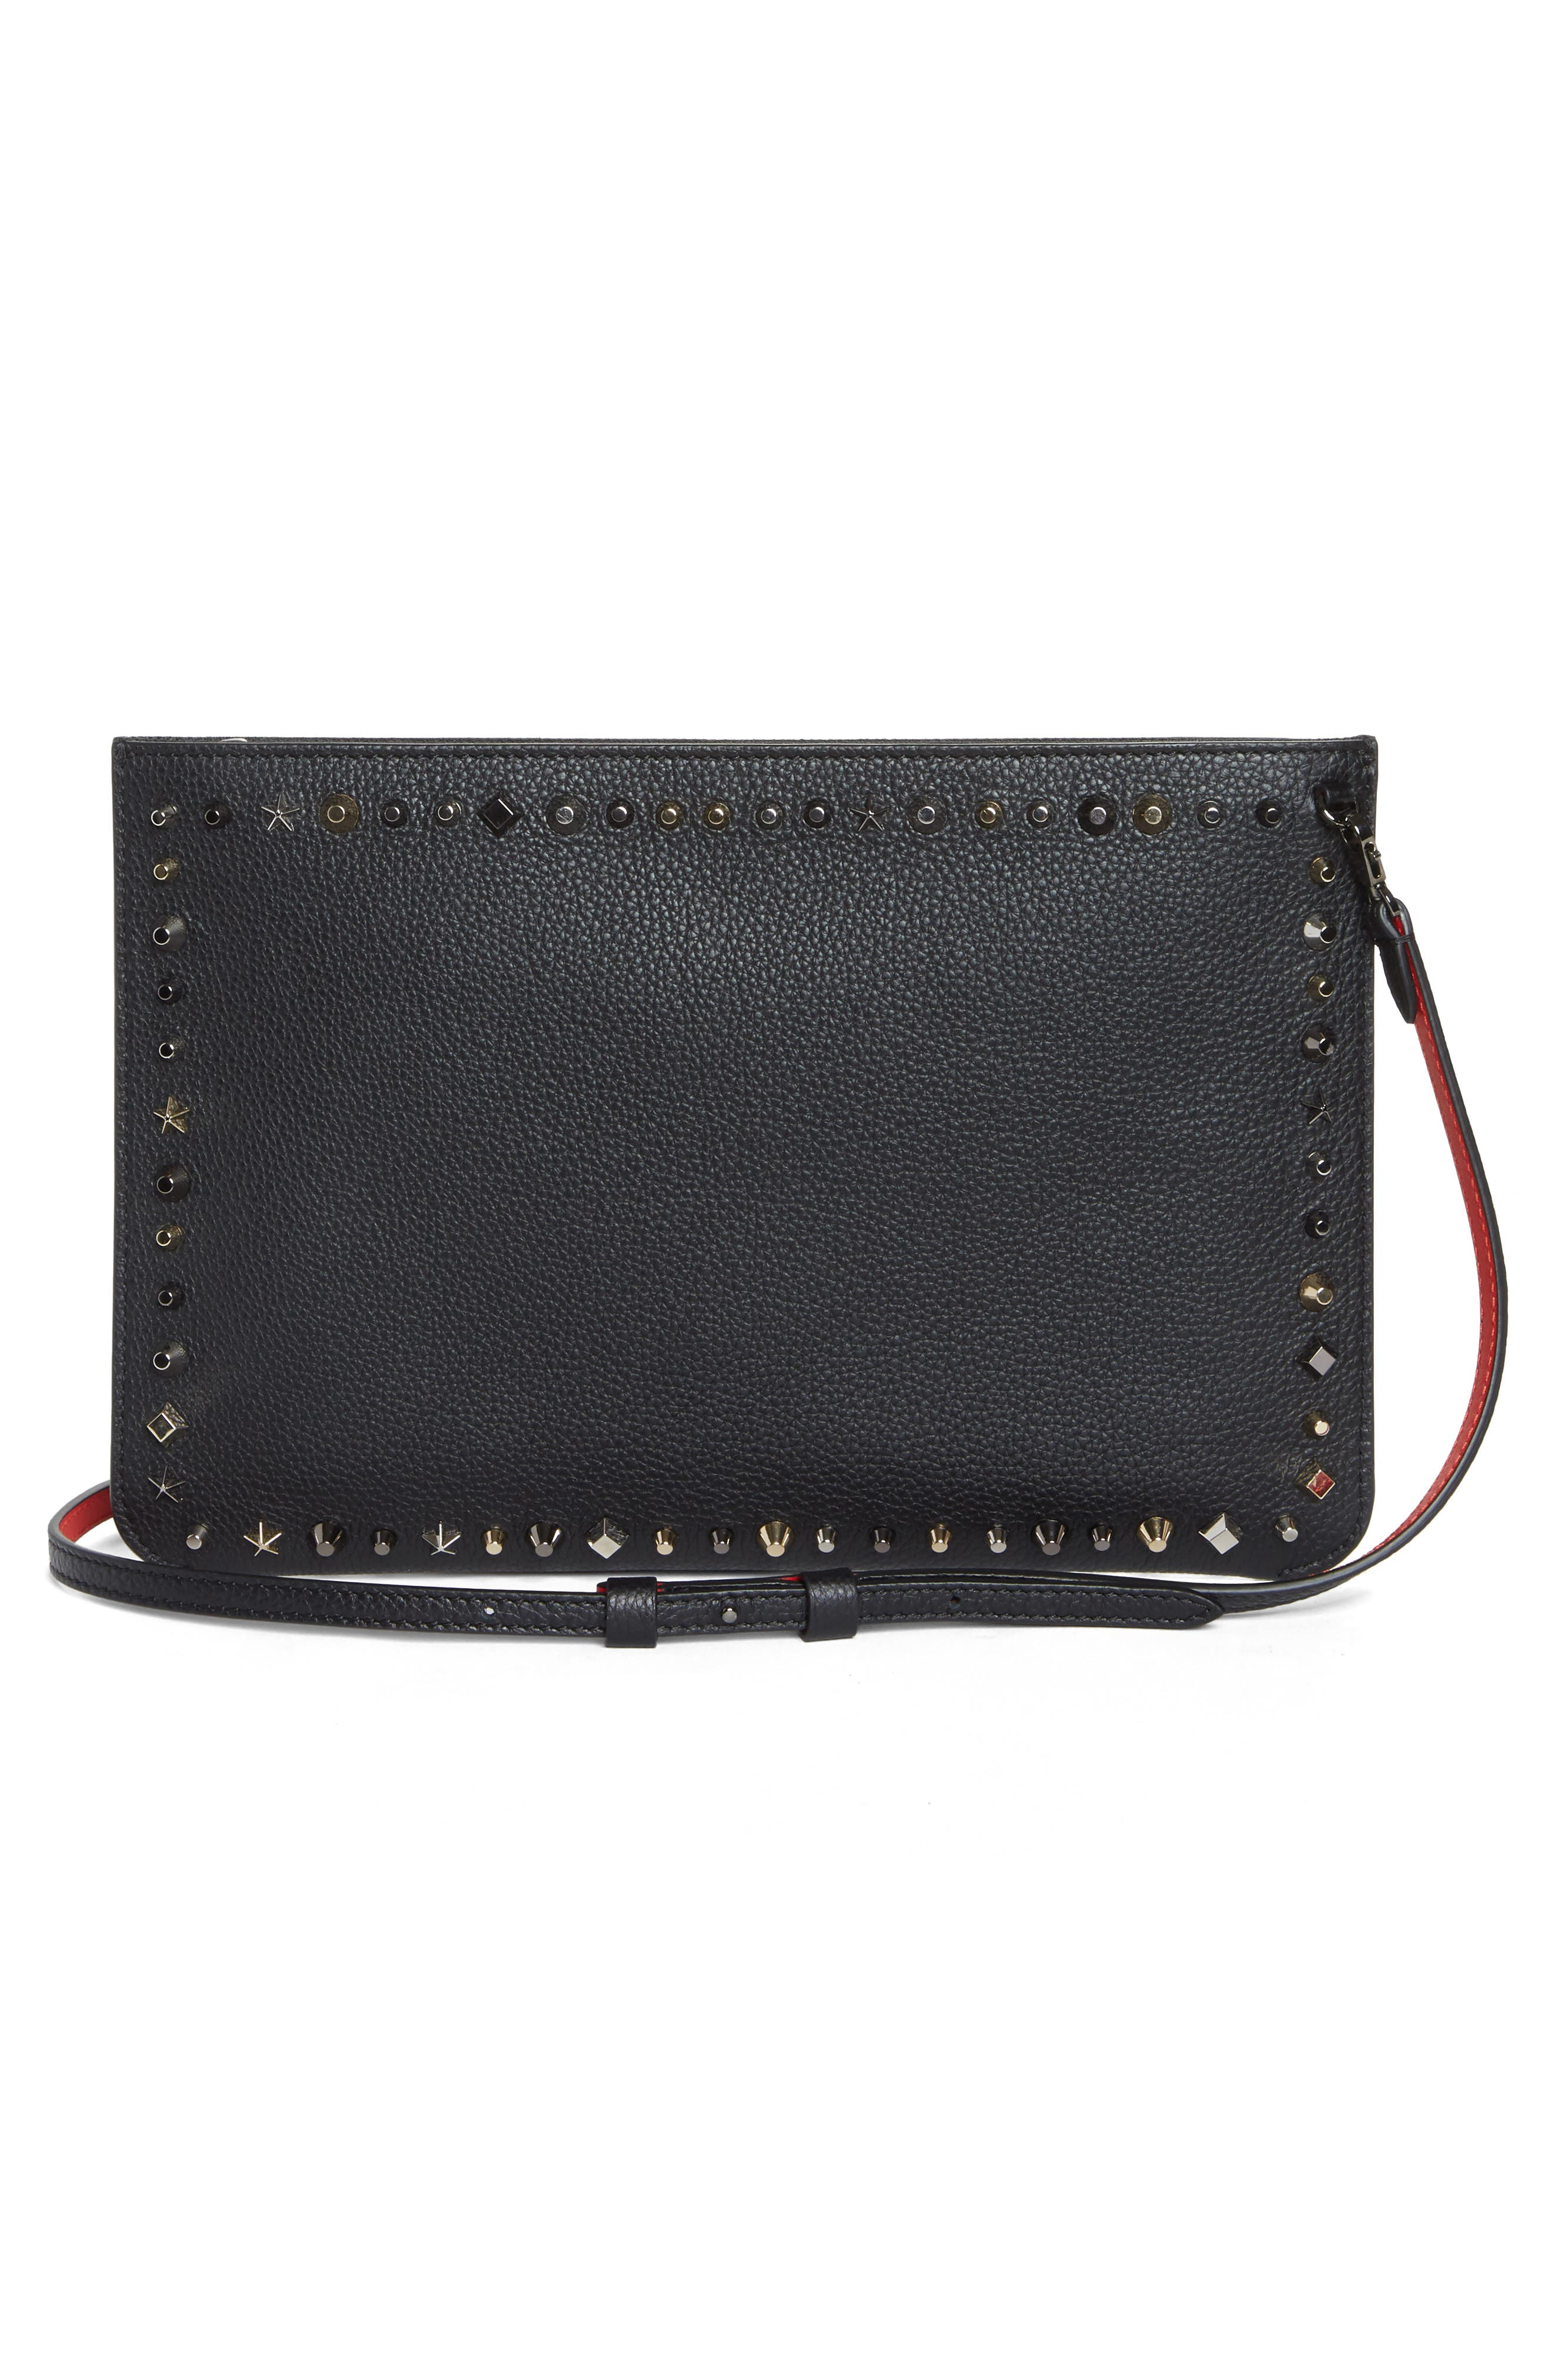 Loubiclutch Spiked Leather Clutch,                             Alternate thumbnail 2, color,                             BLACK/ MULTIMETAL